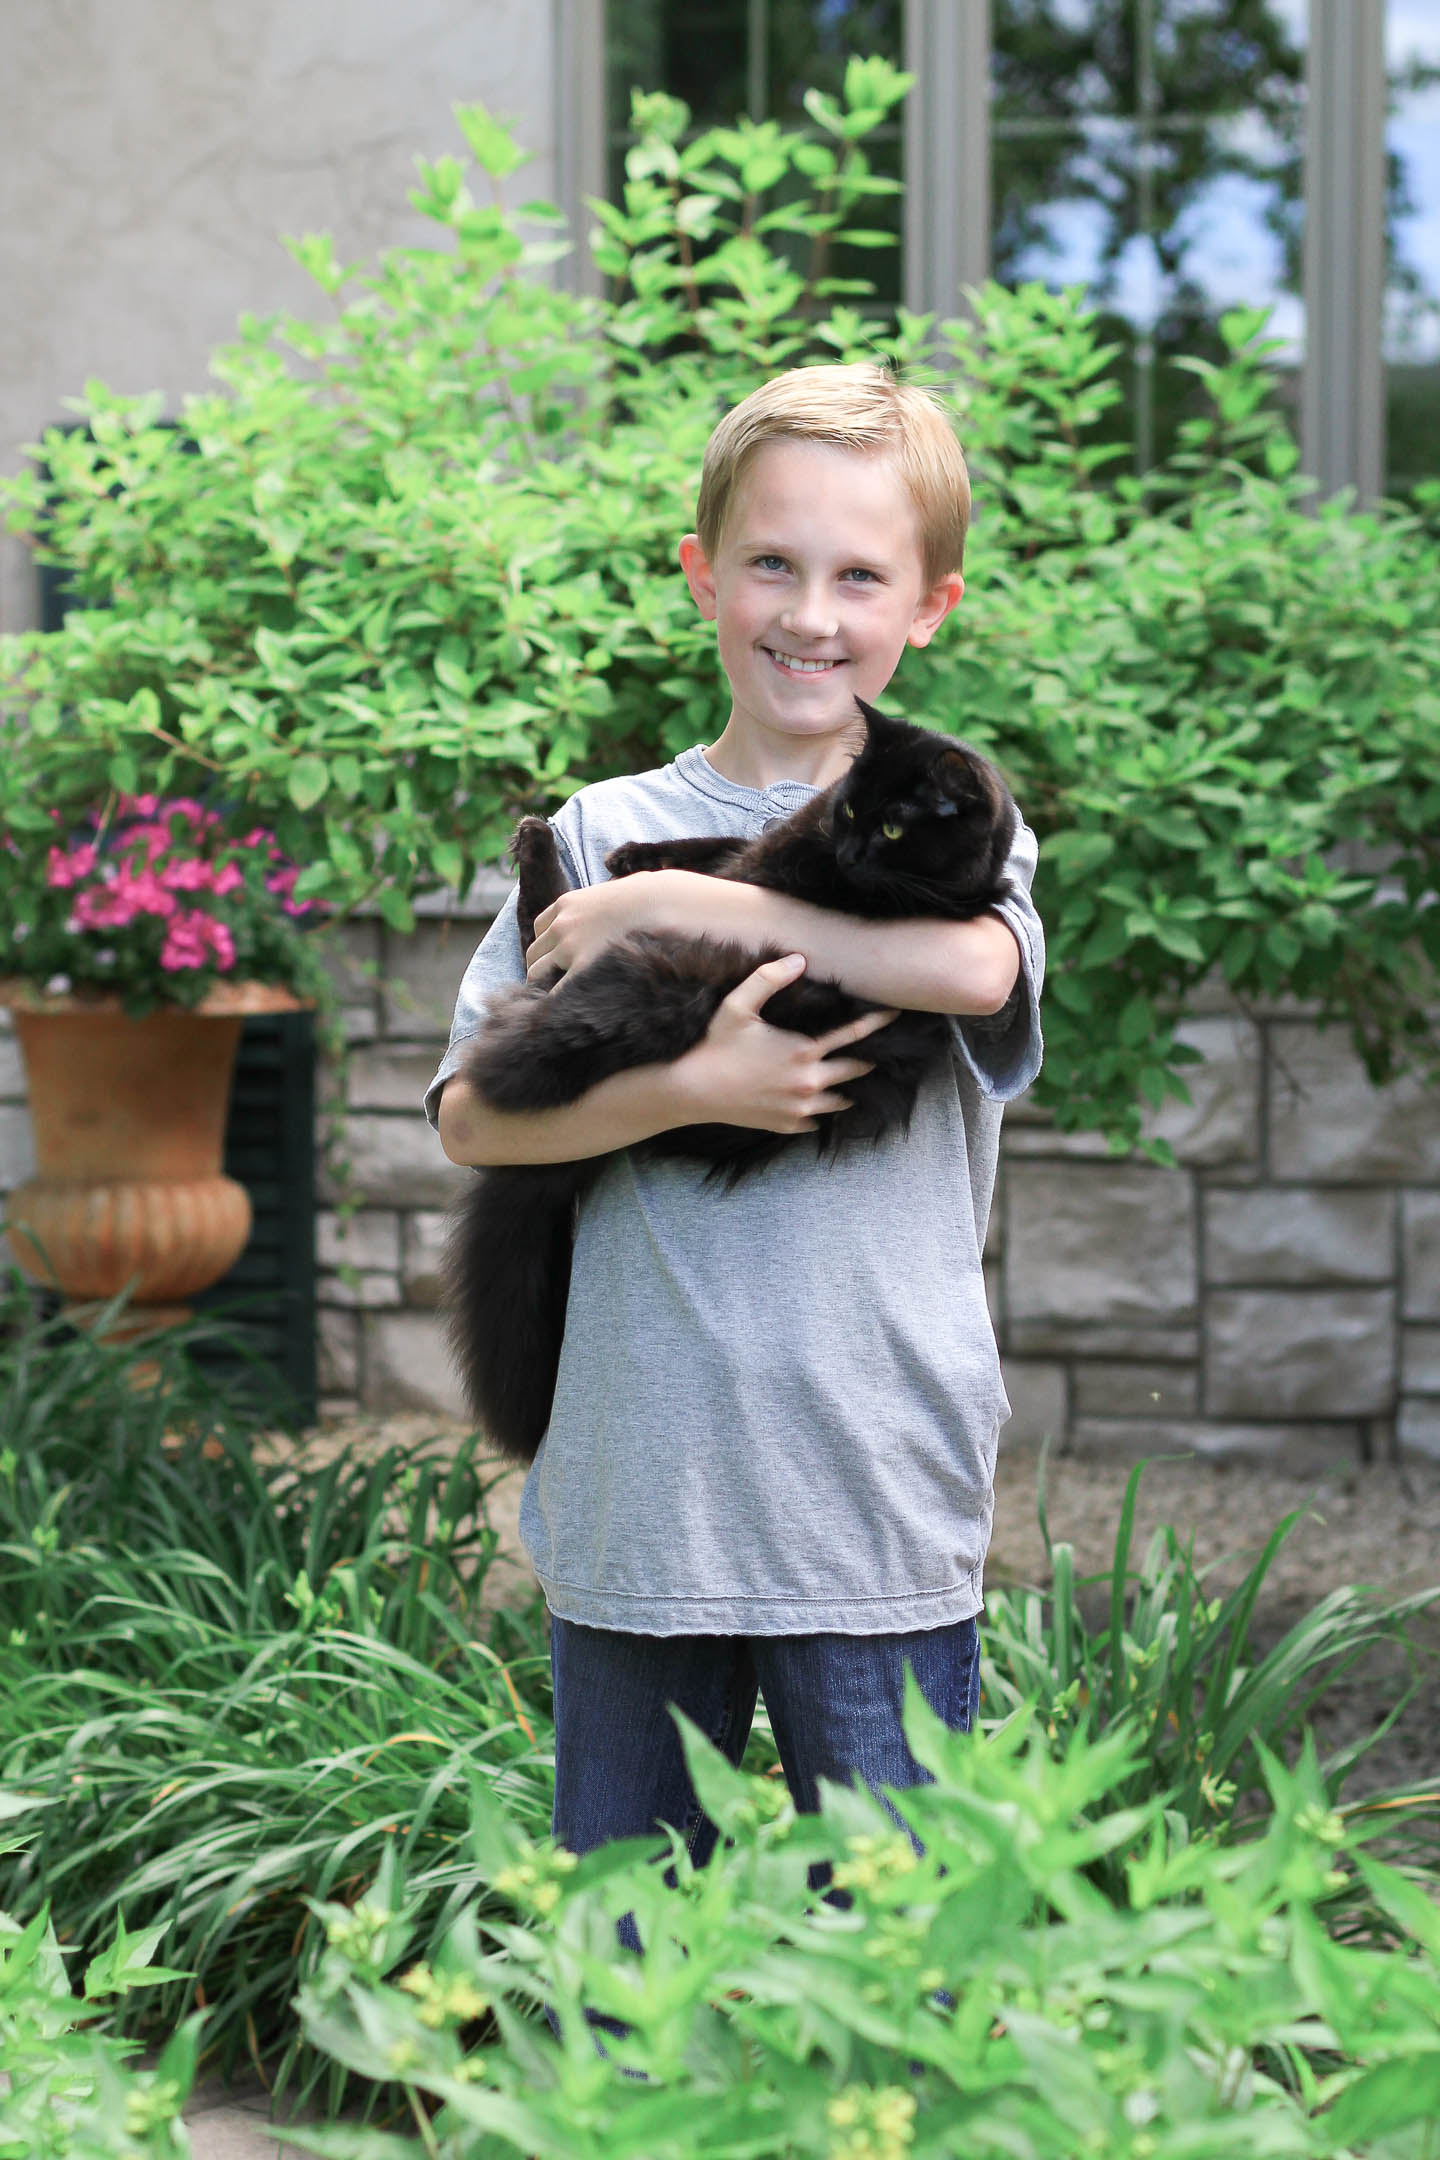 A boy holding a black cat